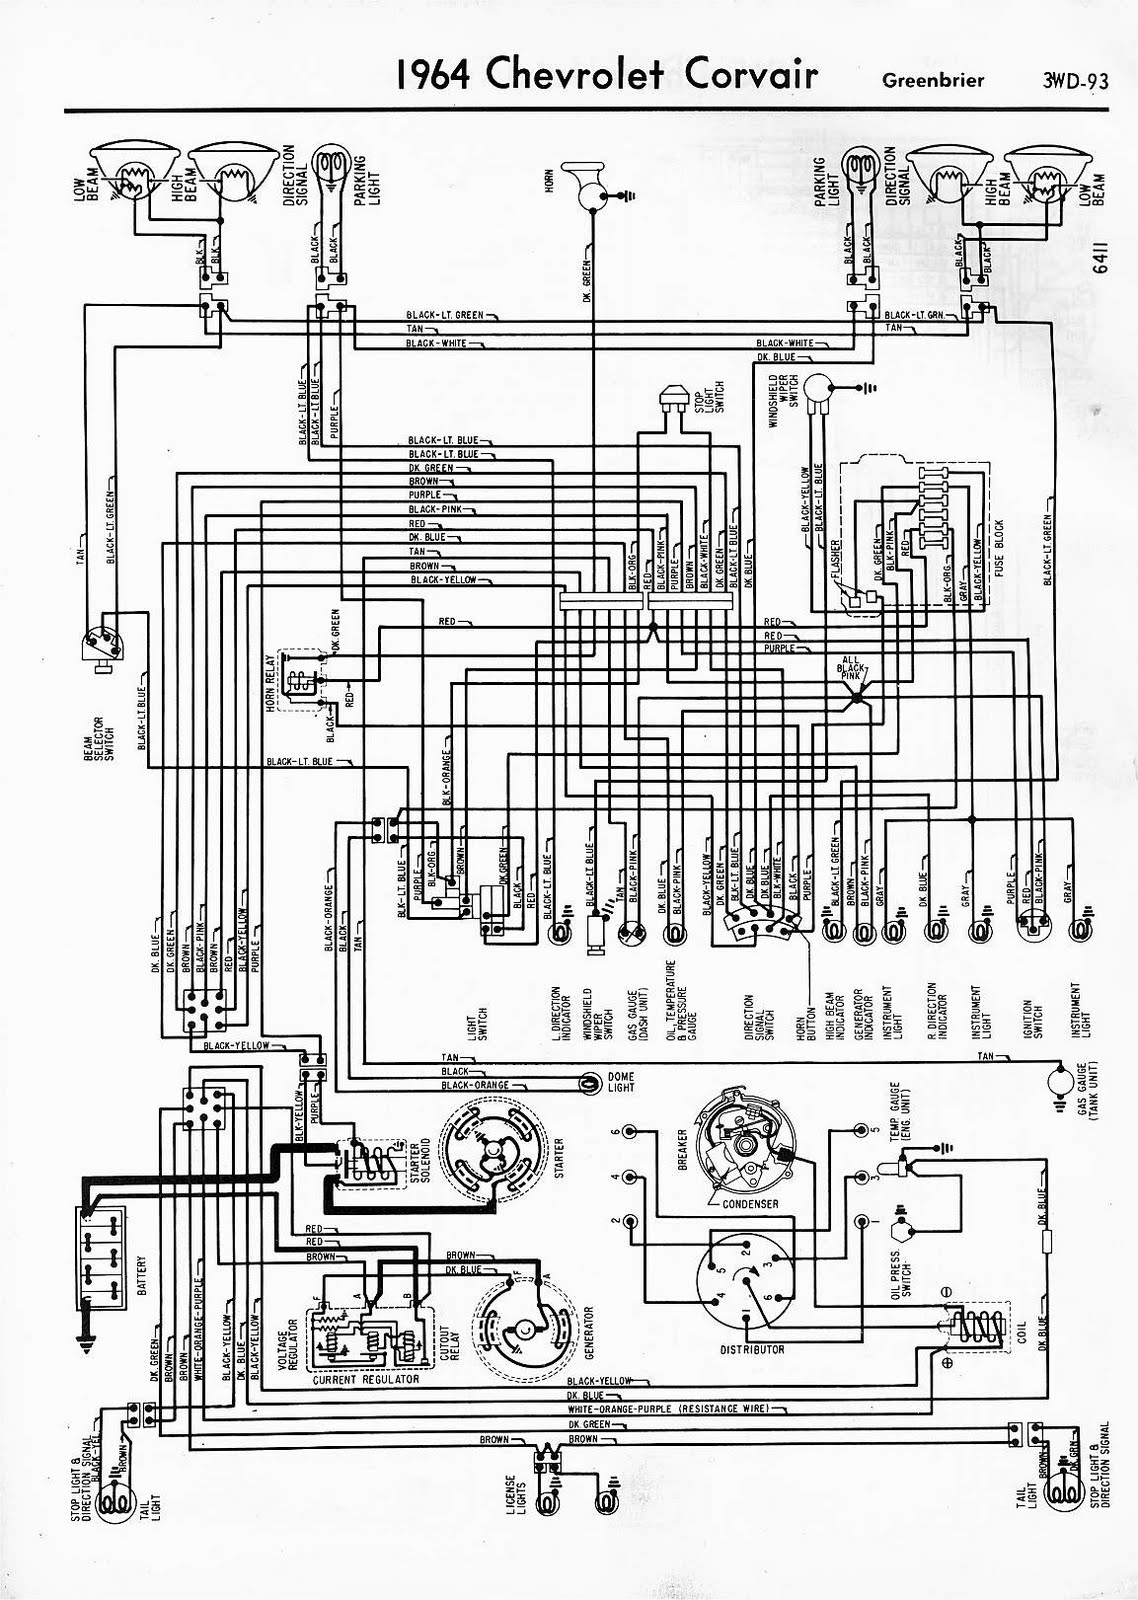 Oldsmobile Ignition Wiring Diagram Data Diagrams Free Auto 1964 Chevrolet Corvair 1995 1950